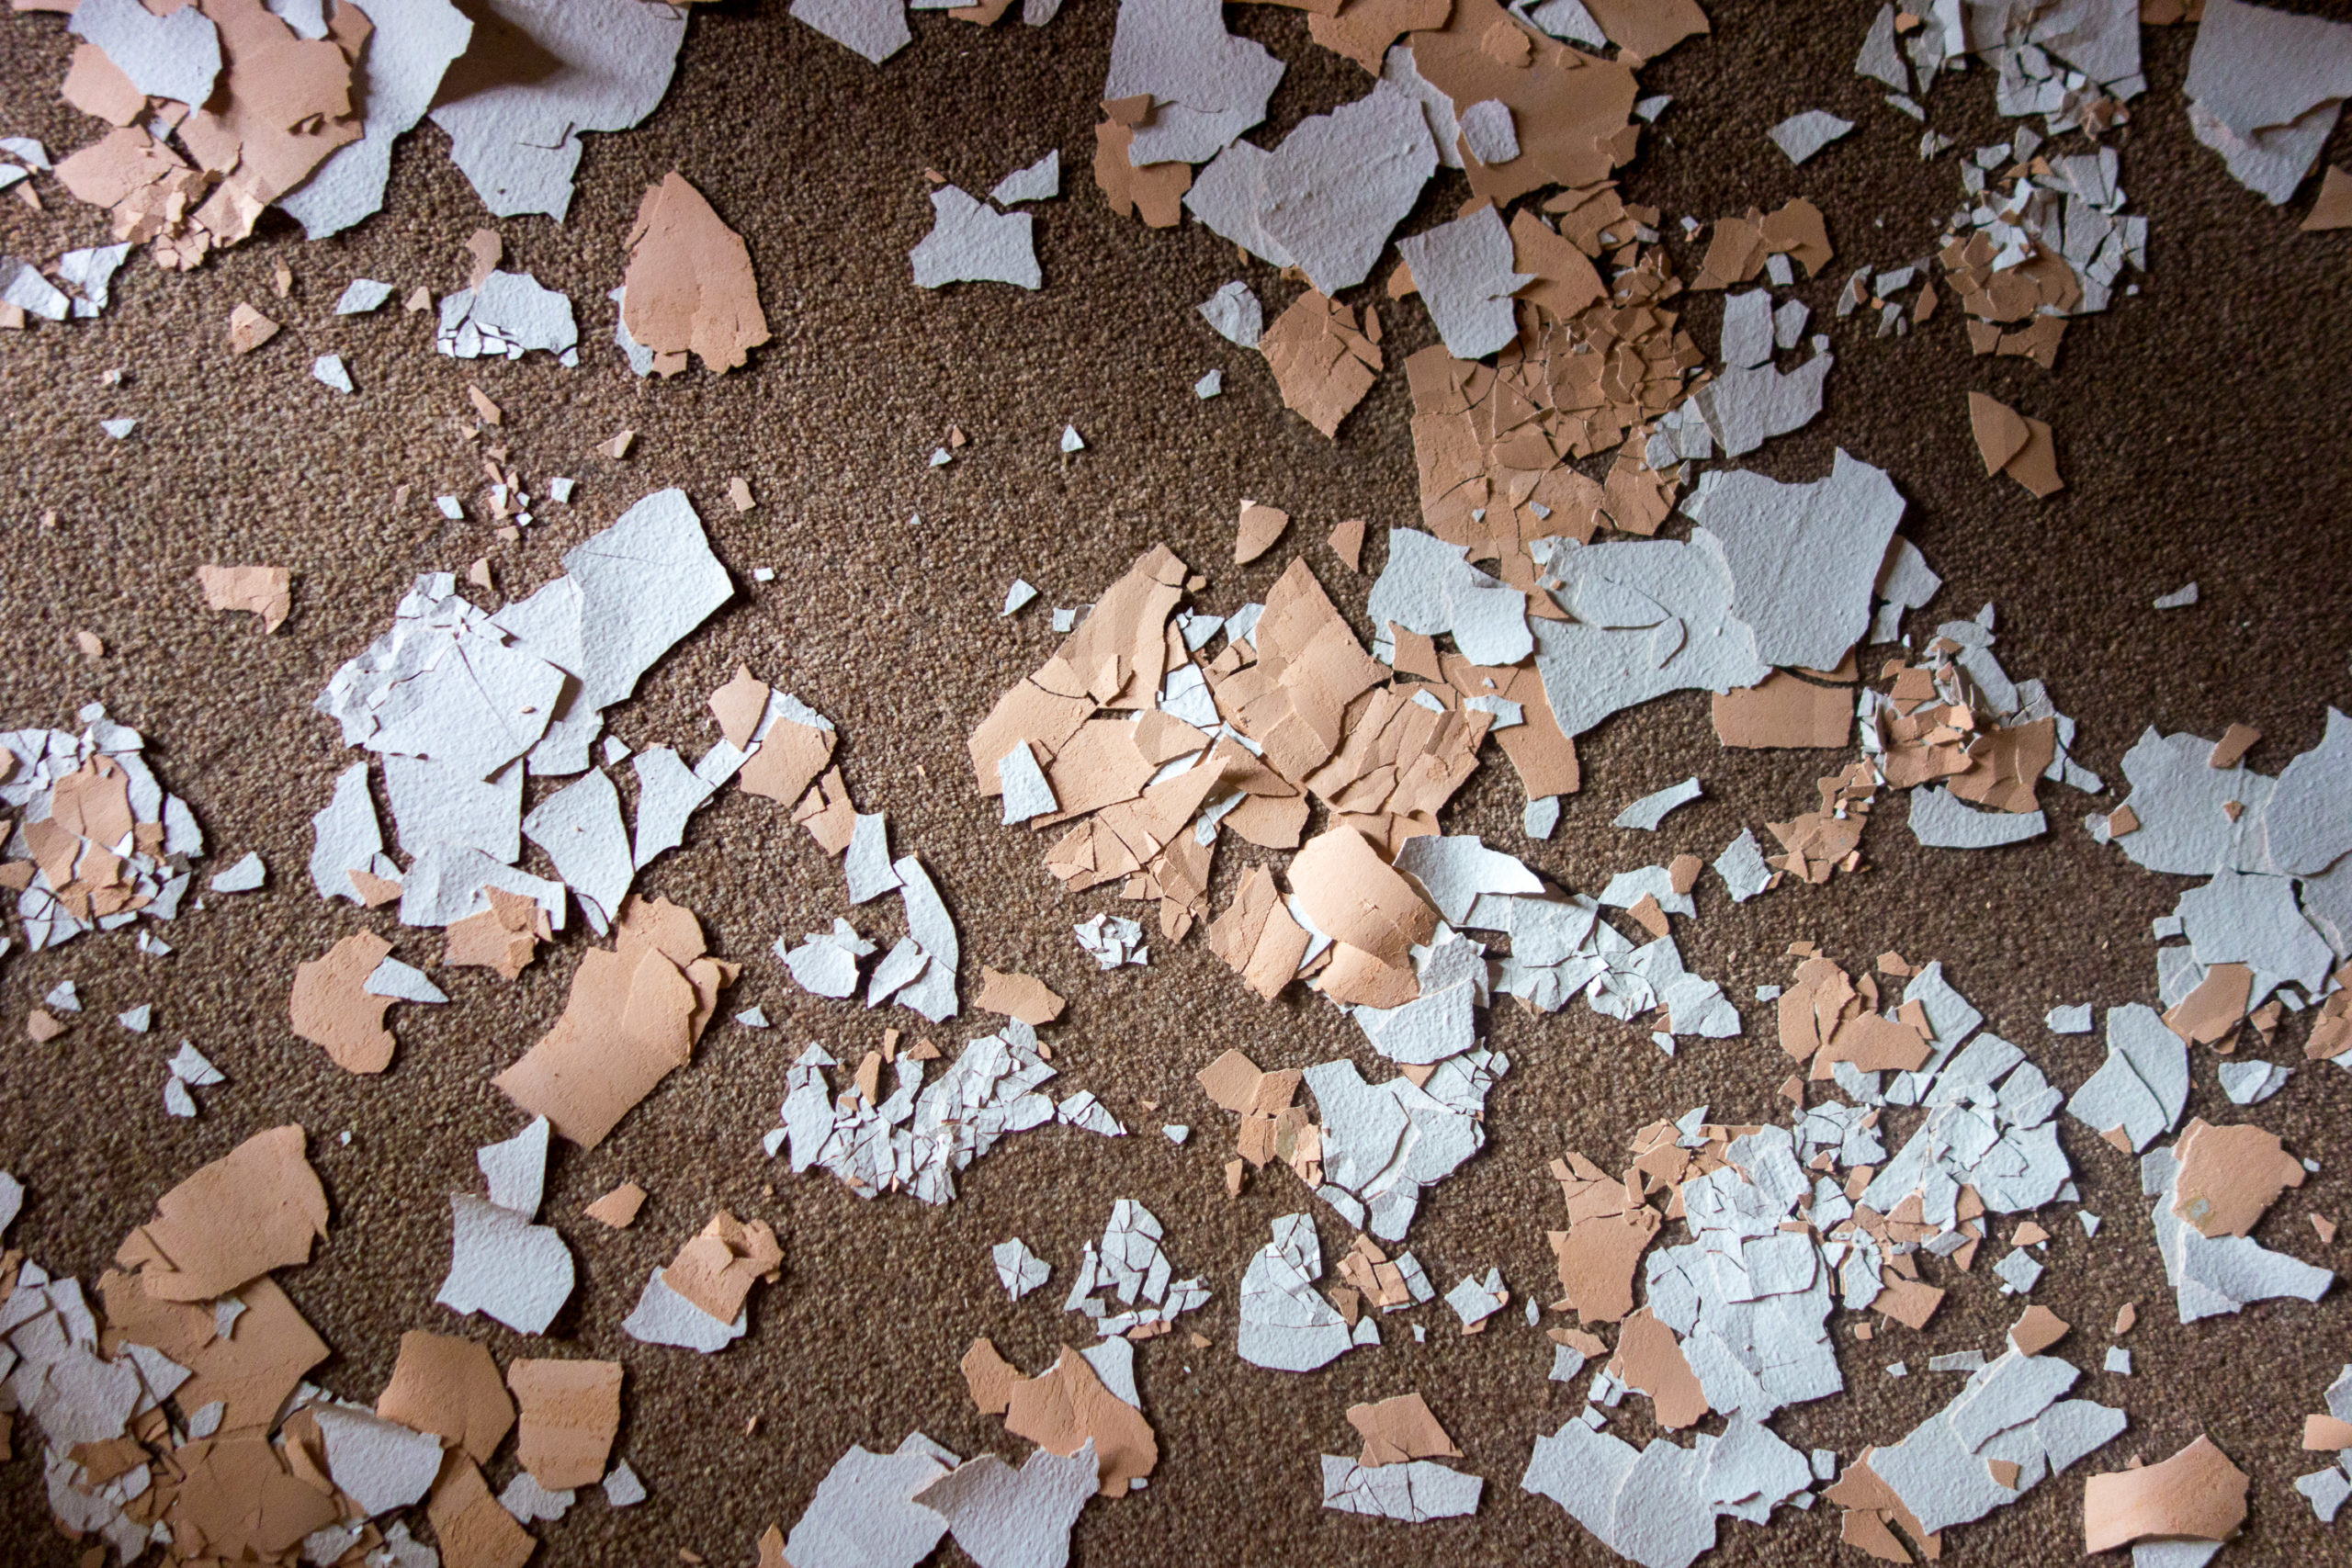 white and tan paint chips on carpet